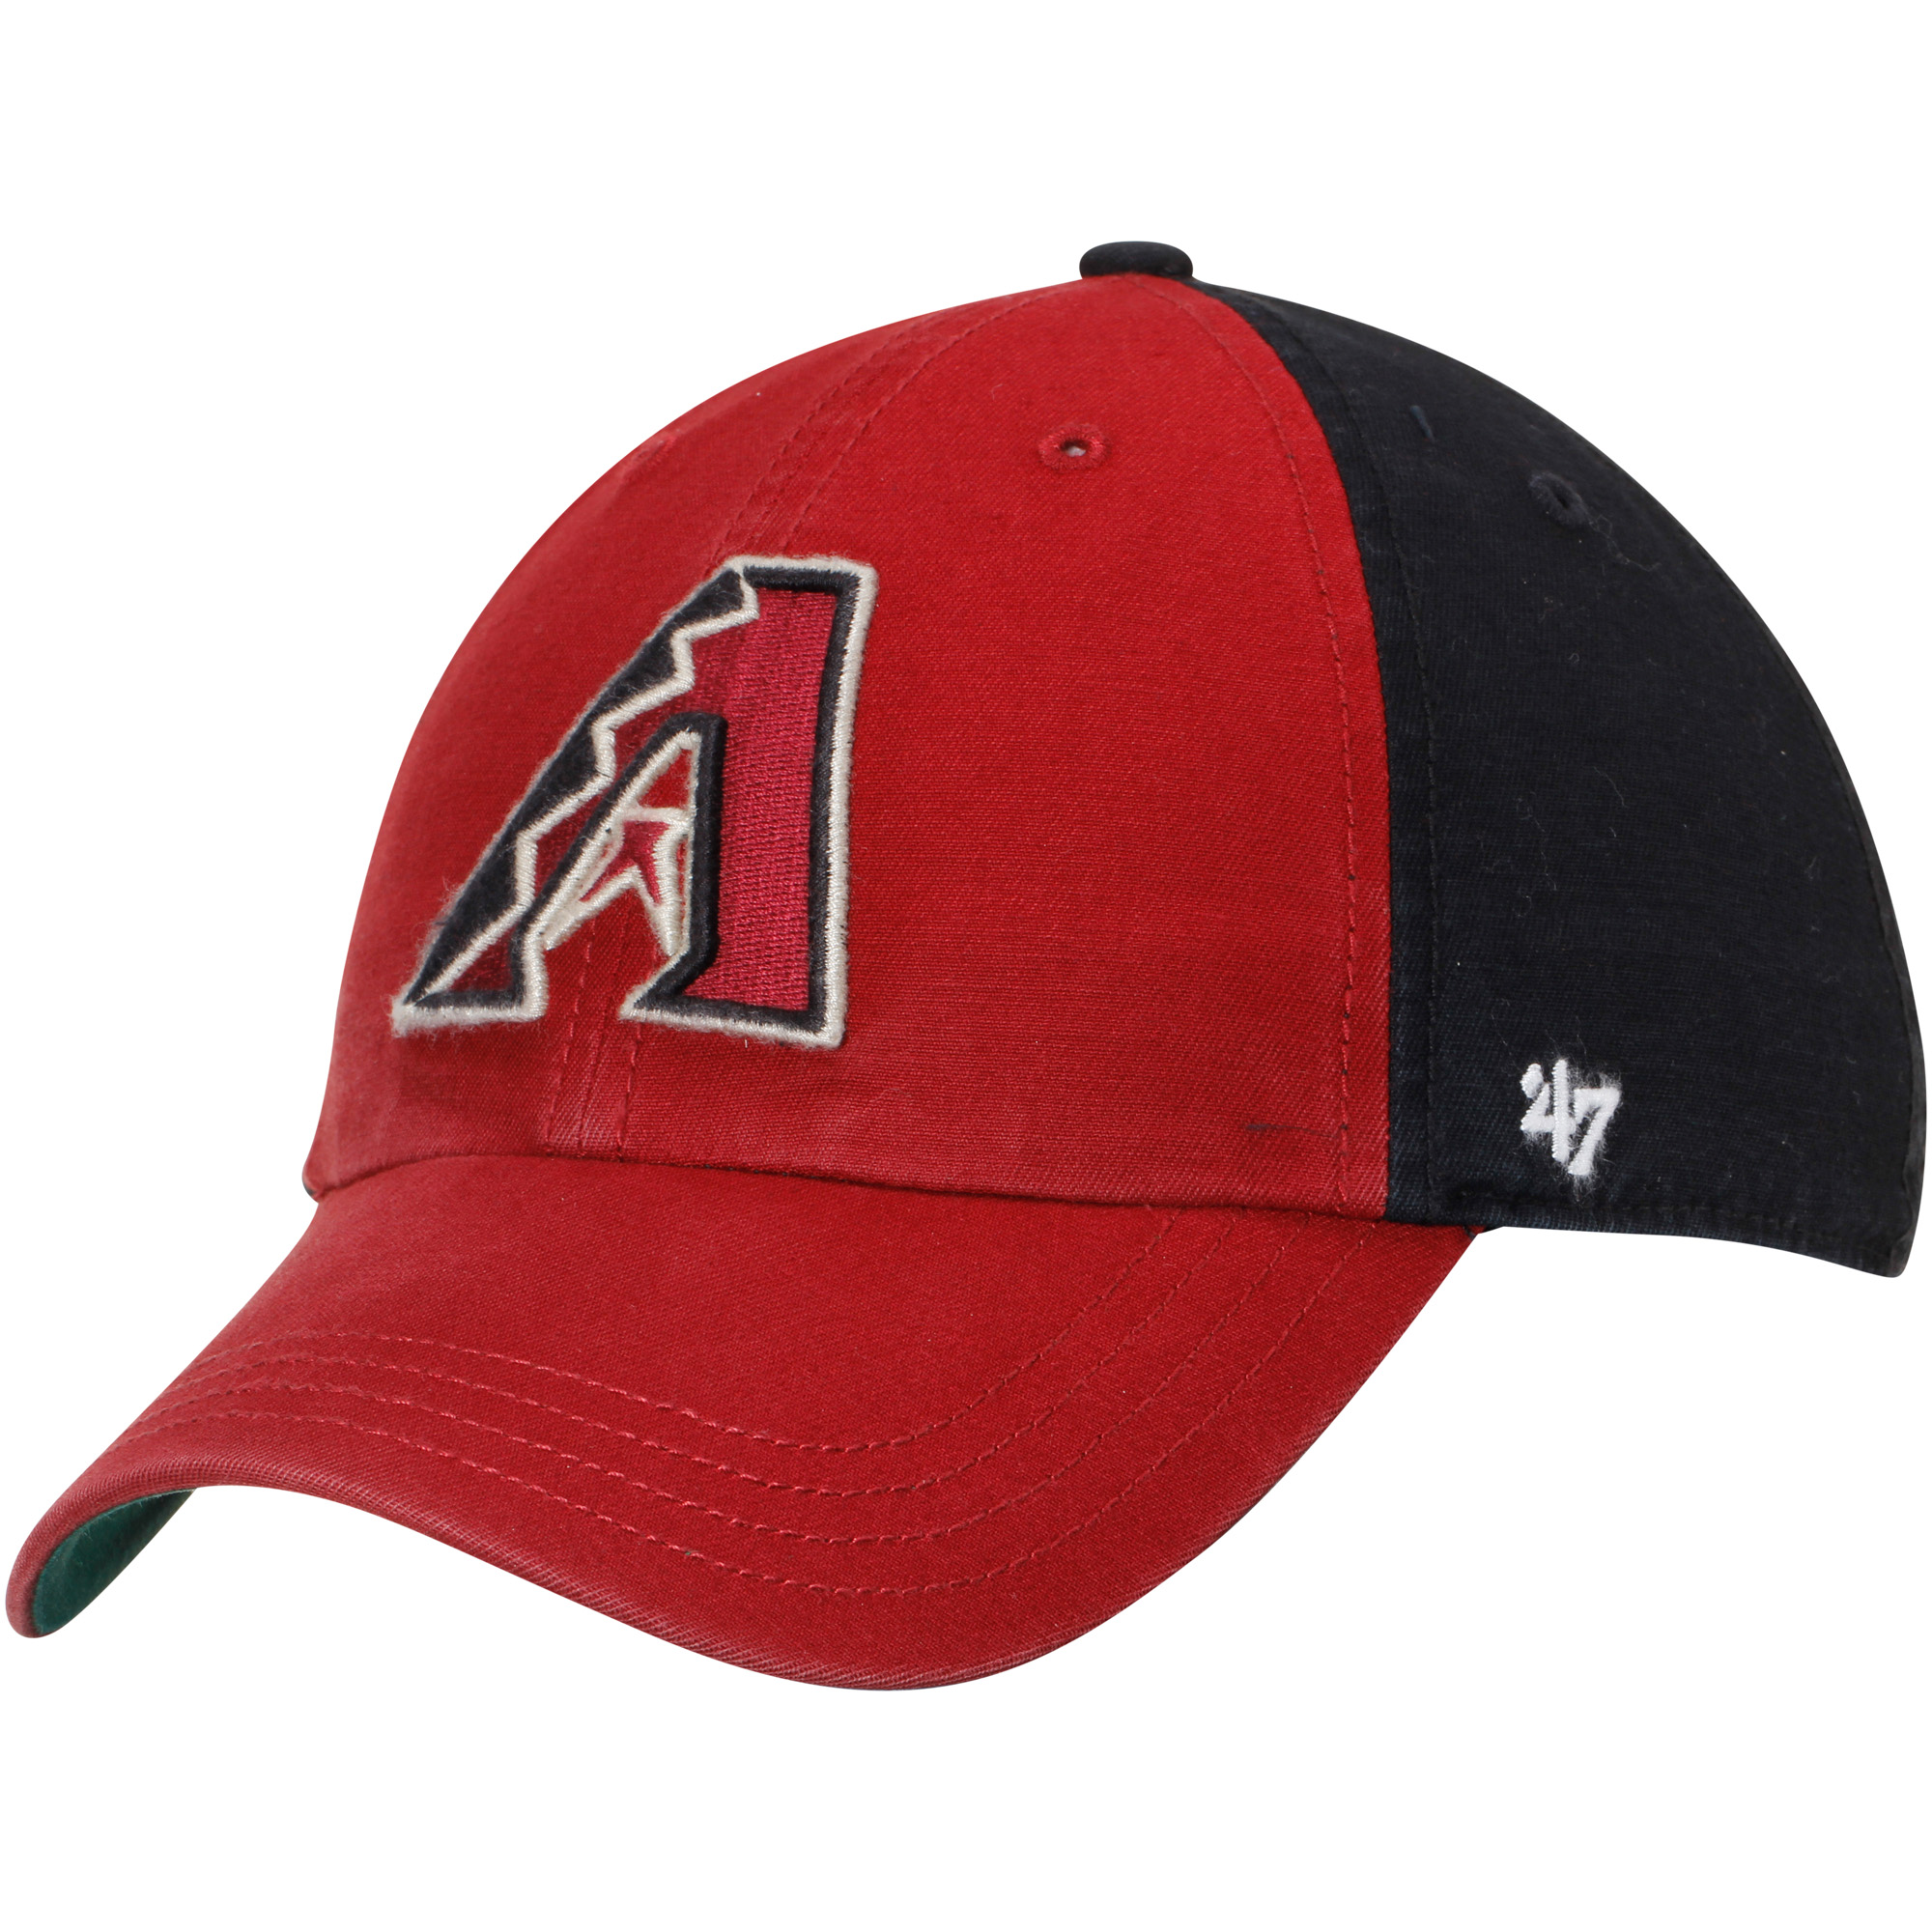 Arizona Diamondbacks '47 Flagstaff Clean Up Adjustable Hat - Red/Black - OSFA